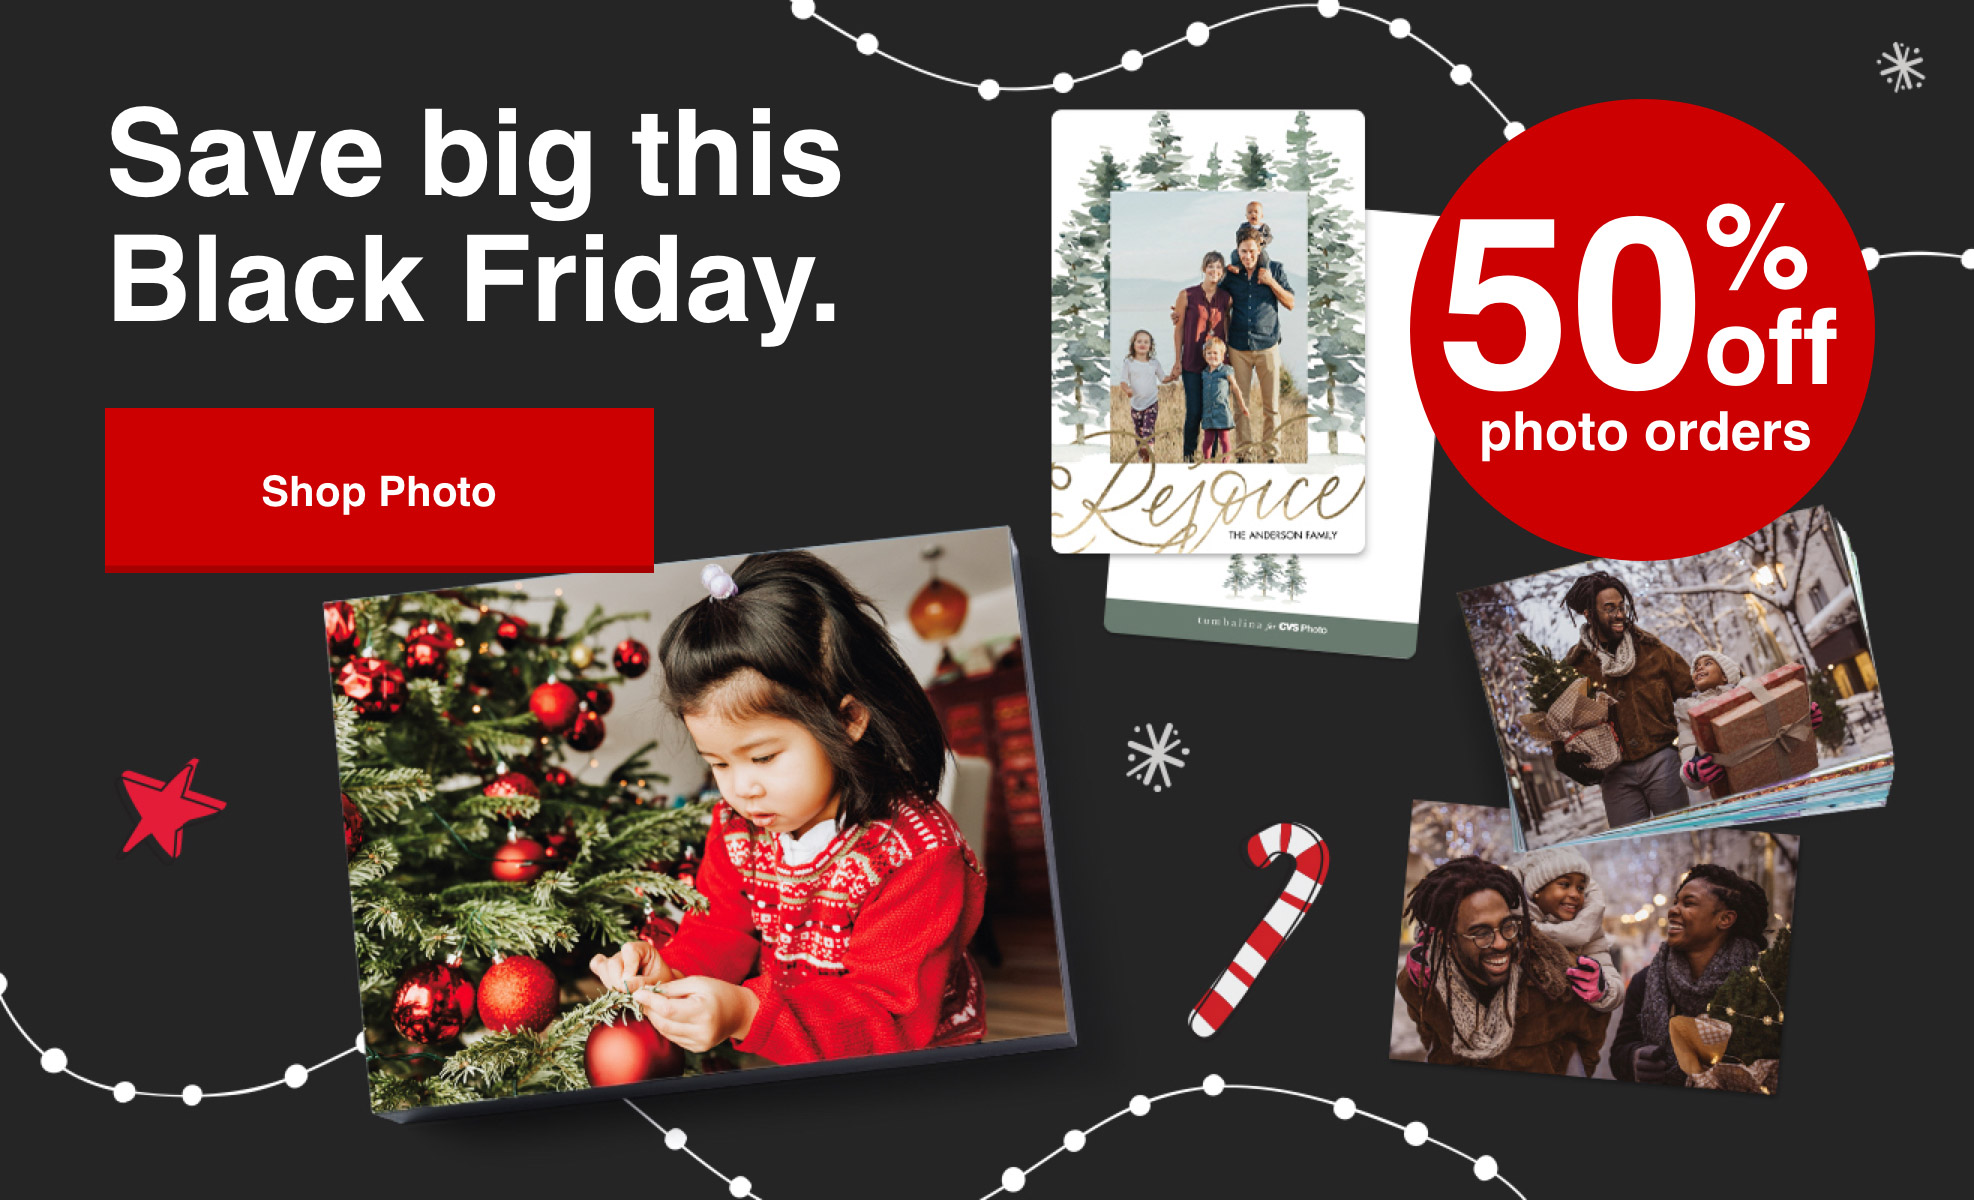 Black Friday Deals are here! Save up to 75% on Photo products. Offers end 11/28/20.